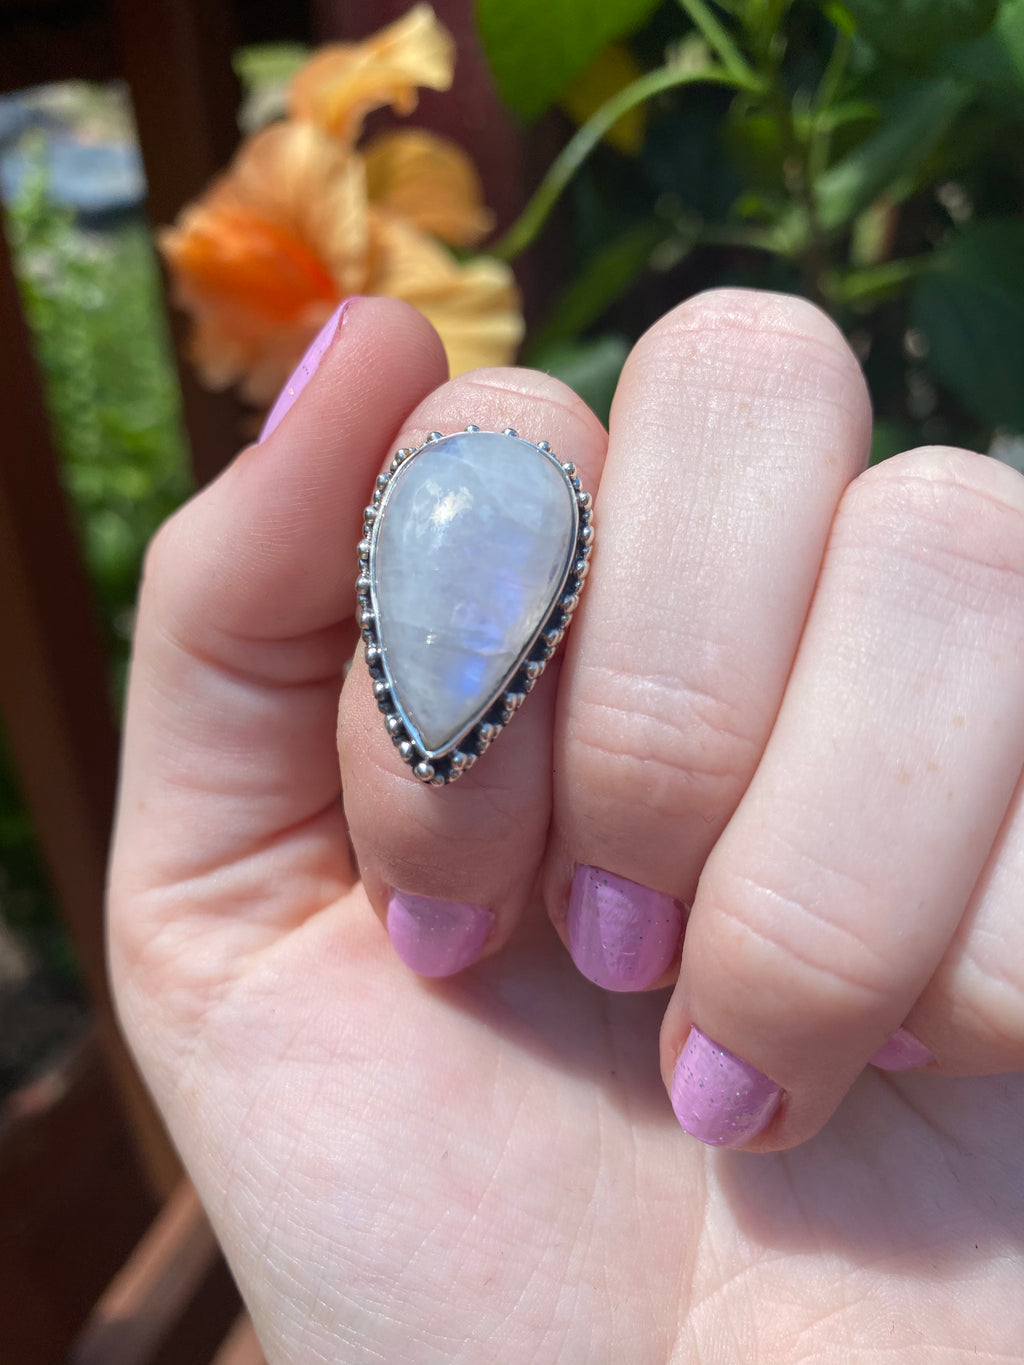 Rainbow moonstone size 6.75 sterling silver